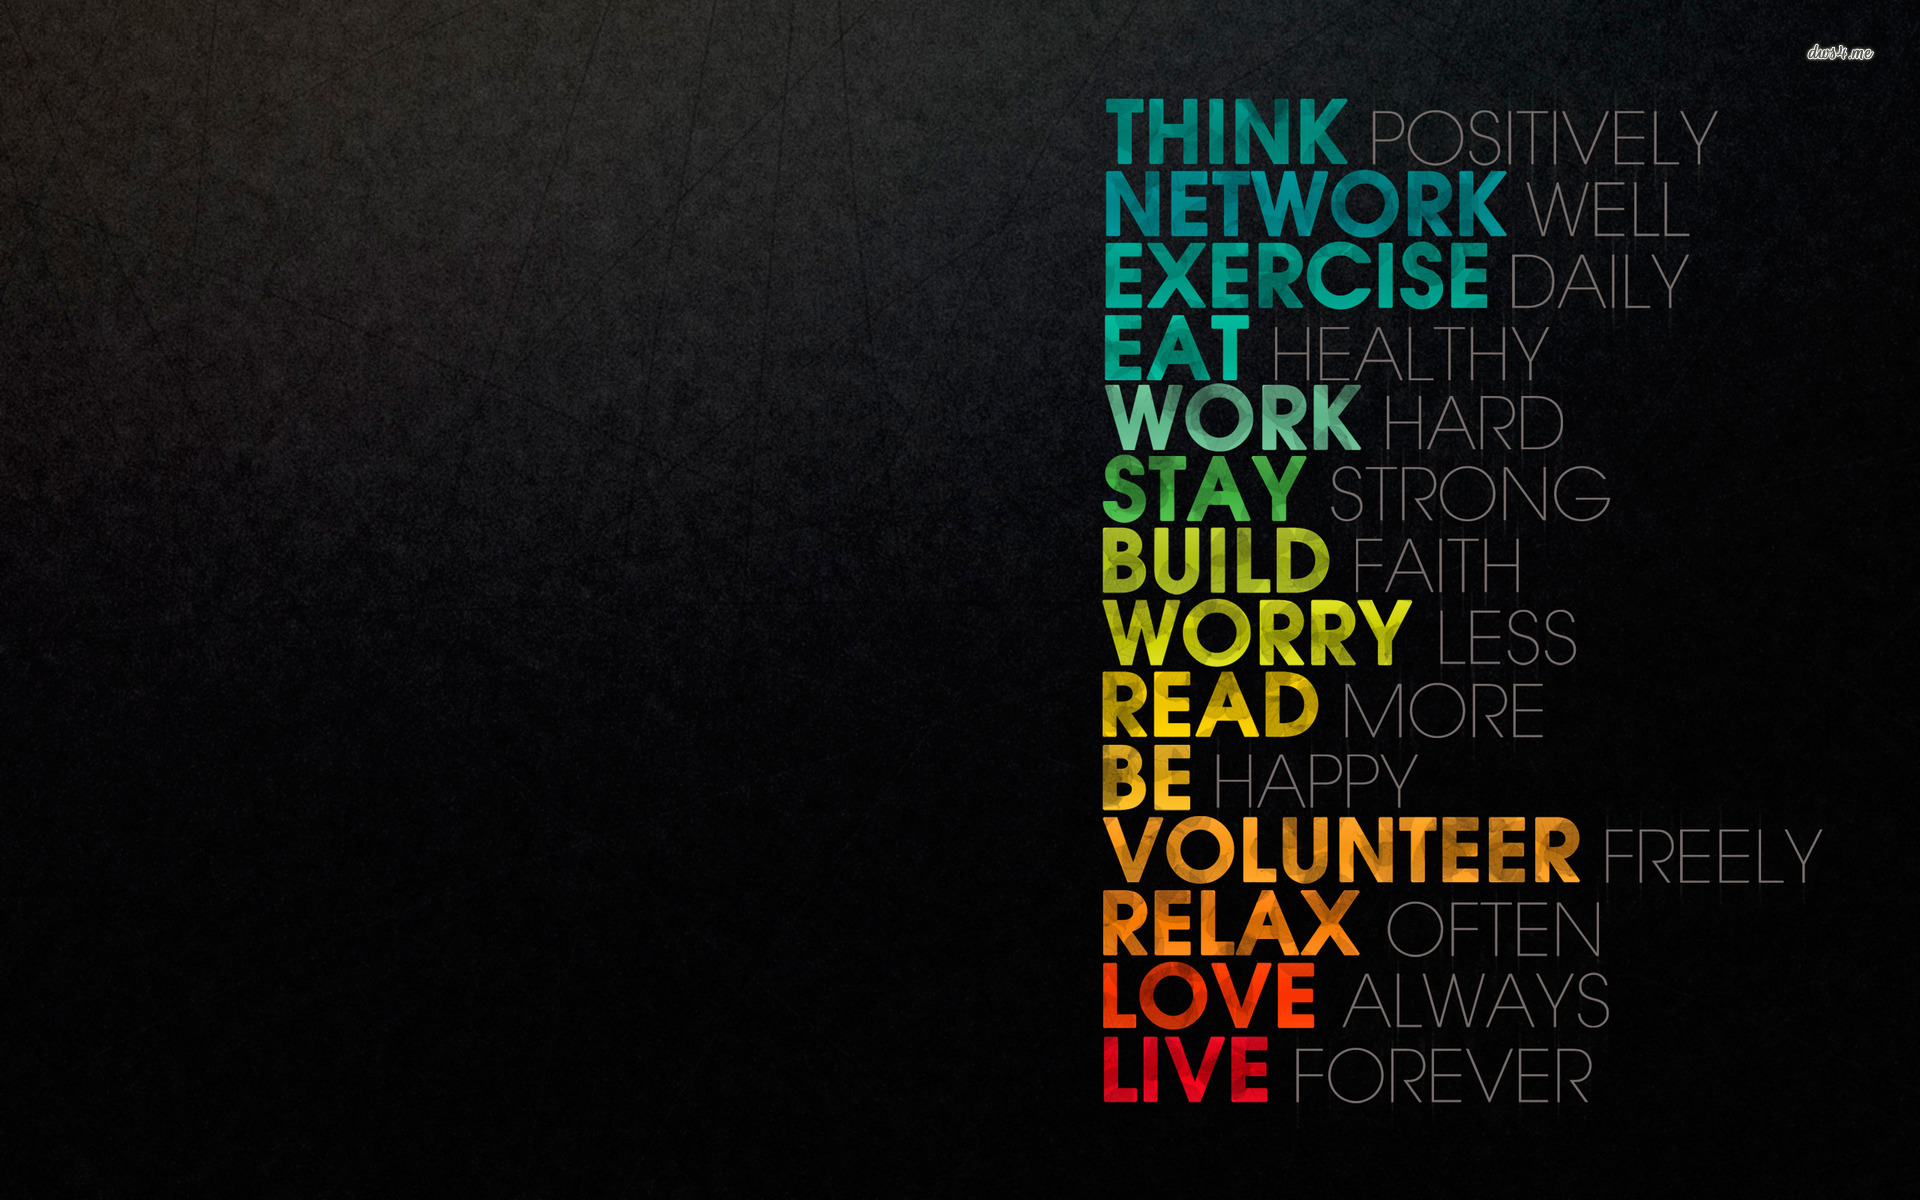 Think Network Exercise Eat Work Stay Build Worry Read Be Volunteer Relax Love Live